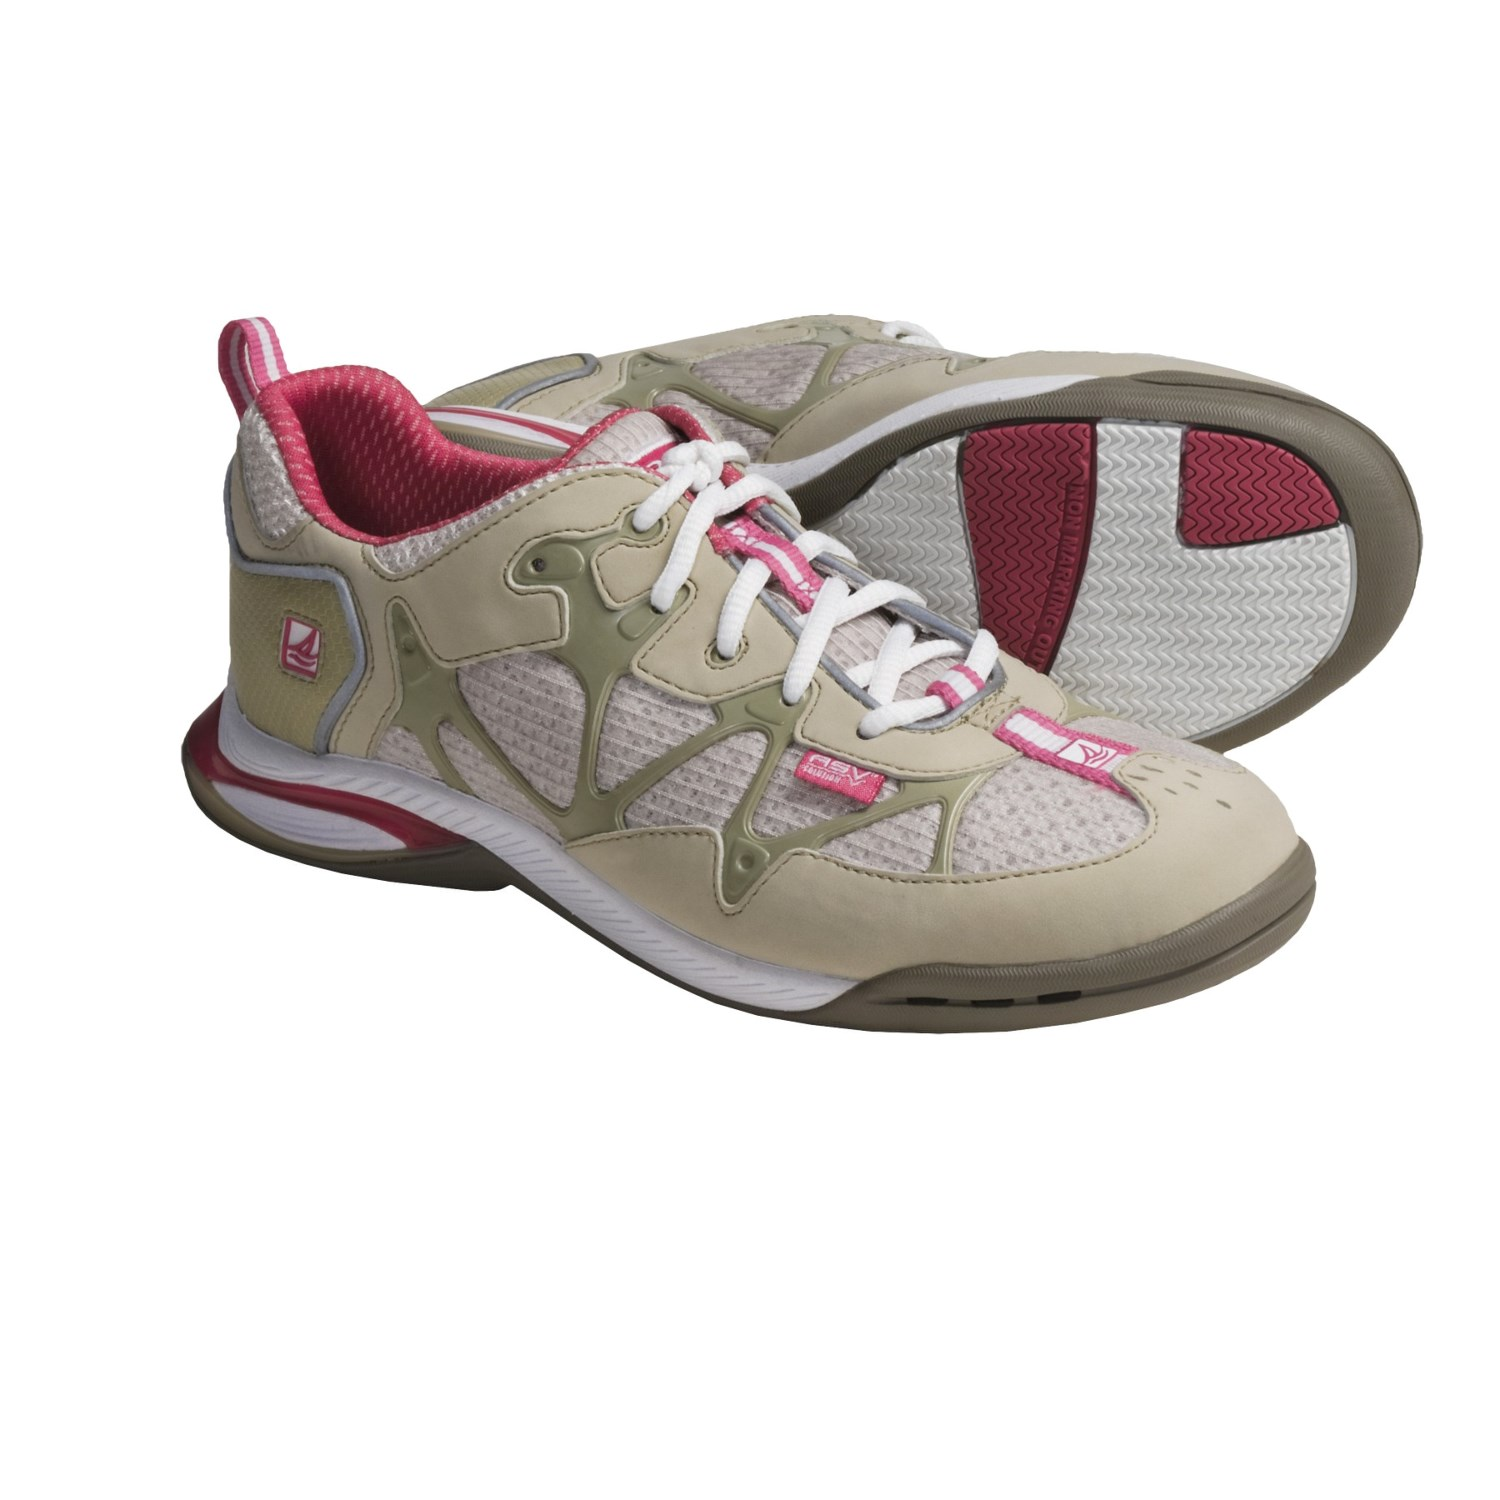 Sperry Top-Sider ASV Athletic Boat Shoes (For Women) in Grey/Pink